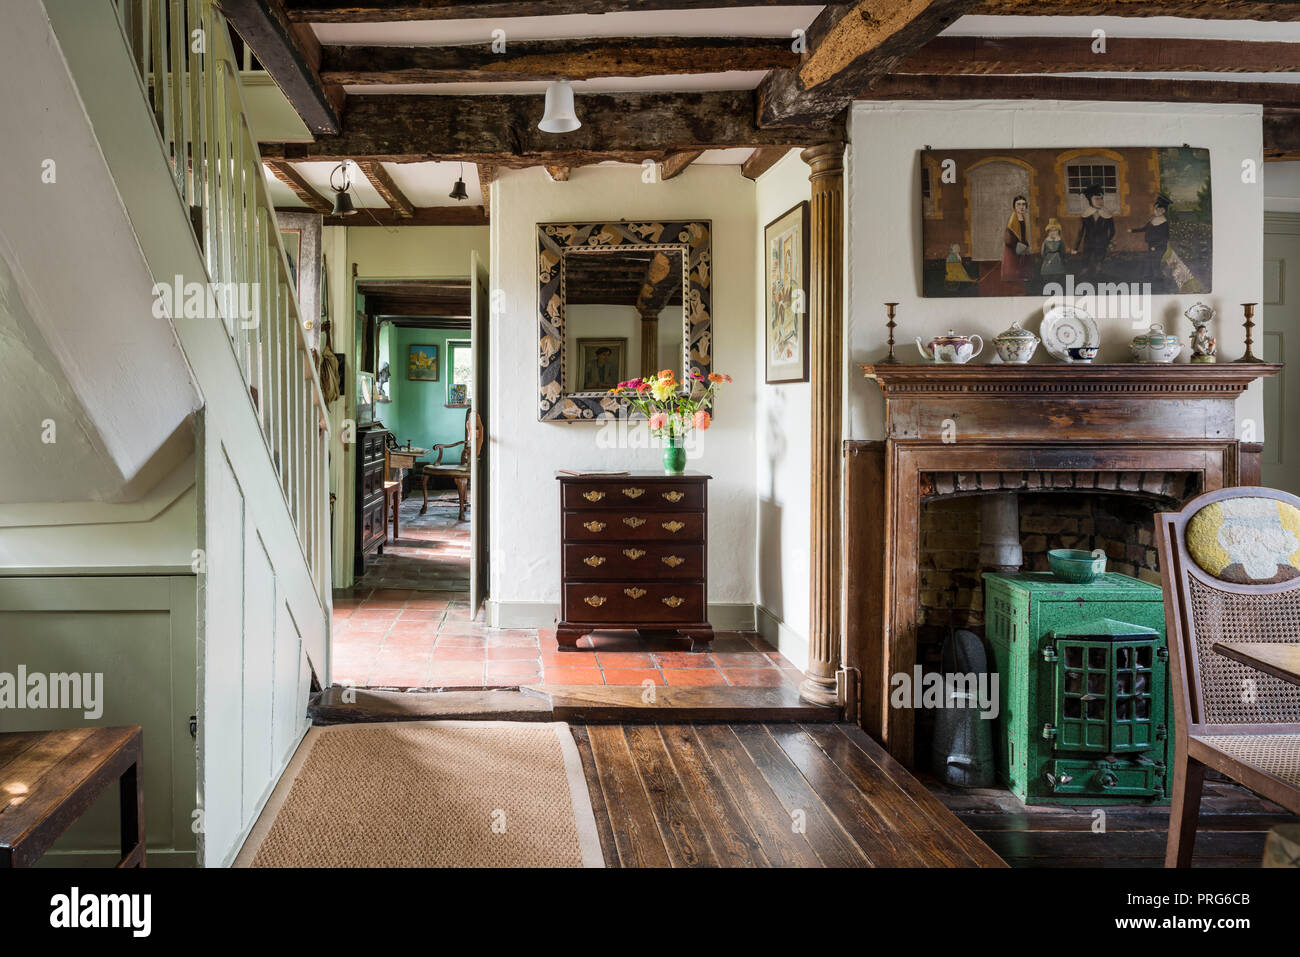 Wooden drawers and green stove in cottage entrance, once home to Virgina Wolfe - Stock Image